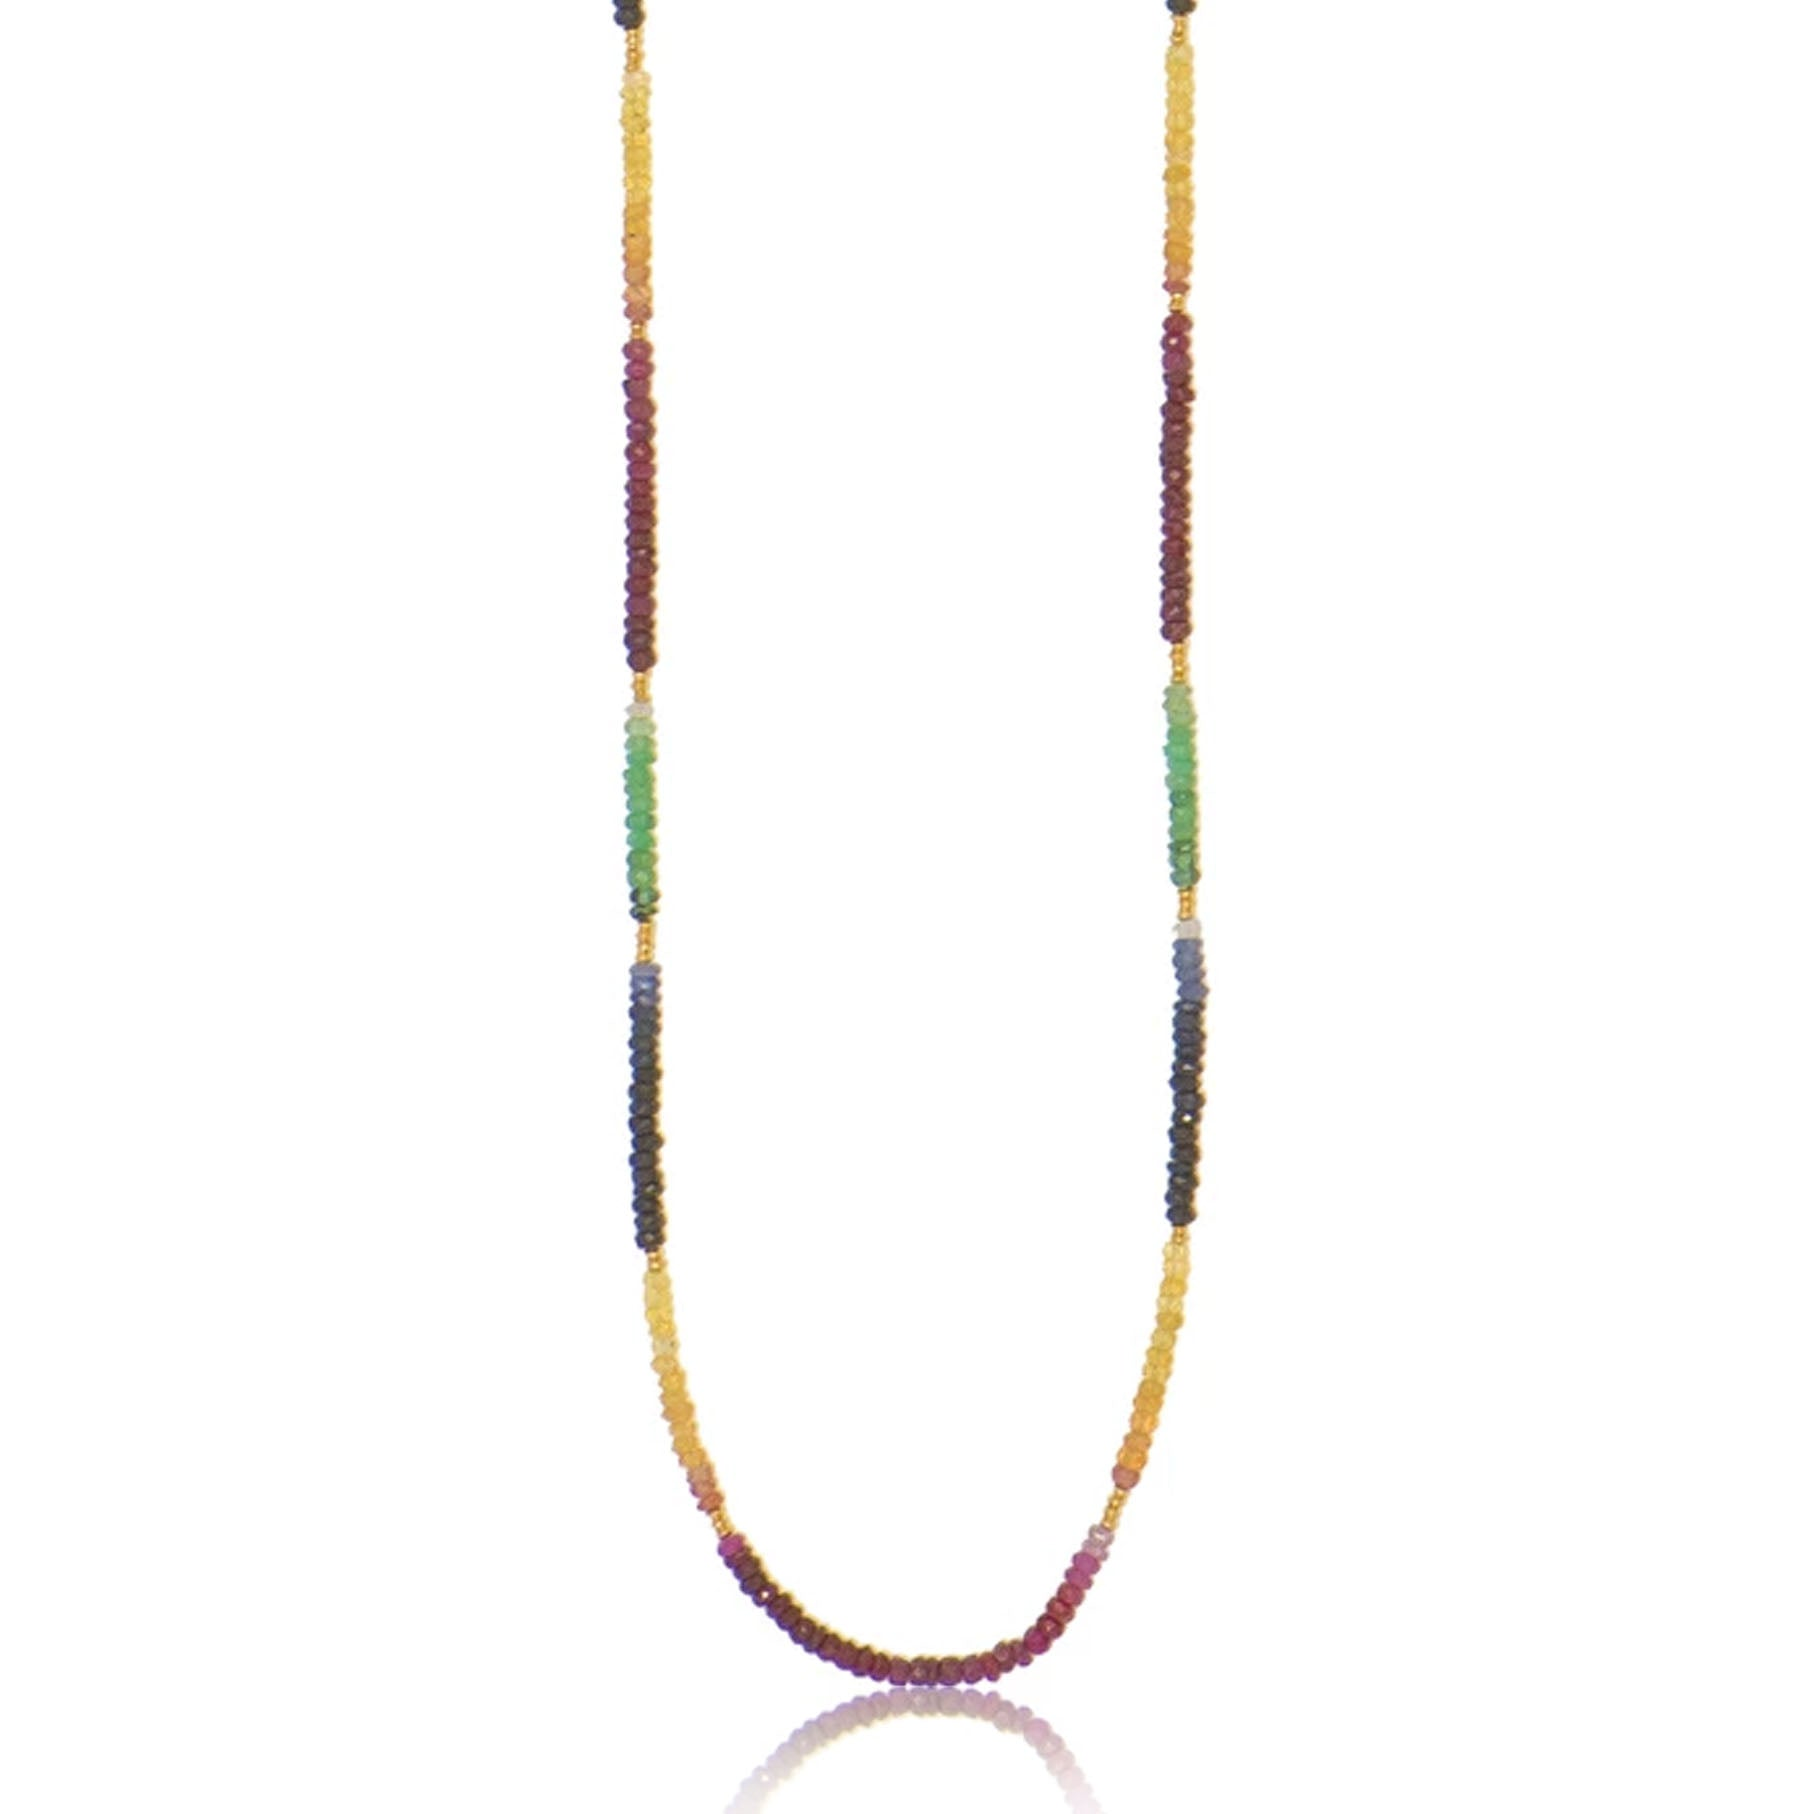 Long Rondel Necklace with Ruby, Sapphire and Emeralds